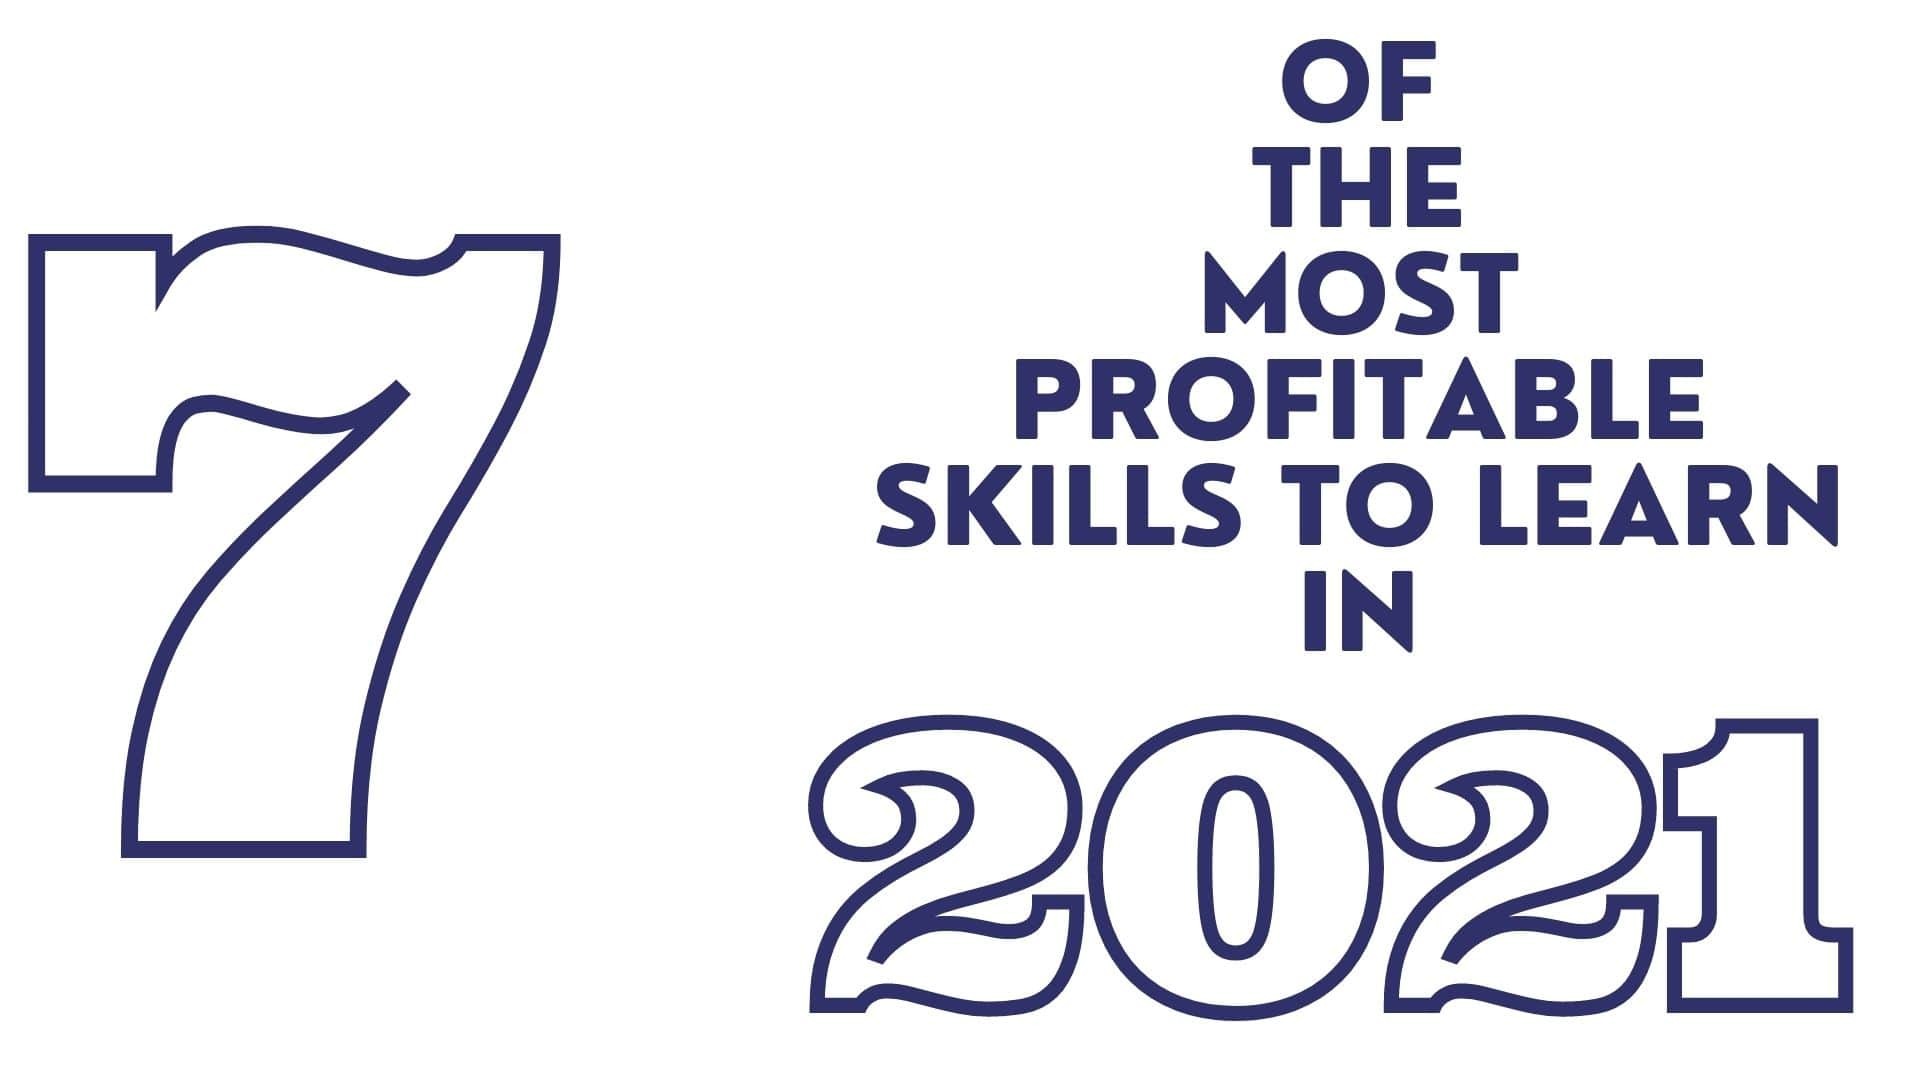 7 of the most profitable skills to learn in 2021